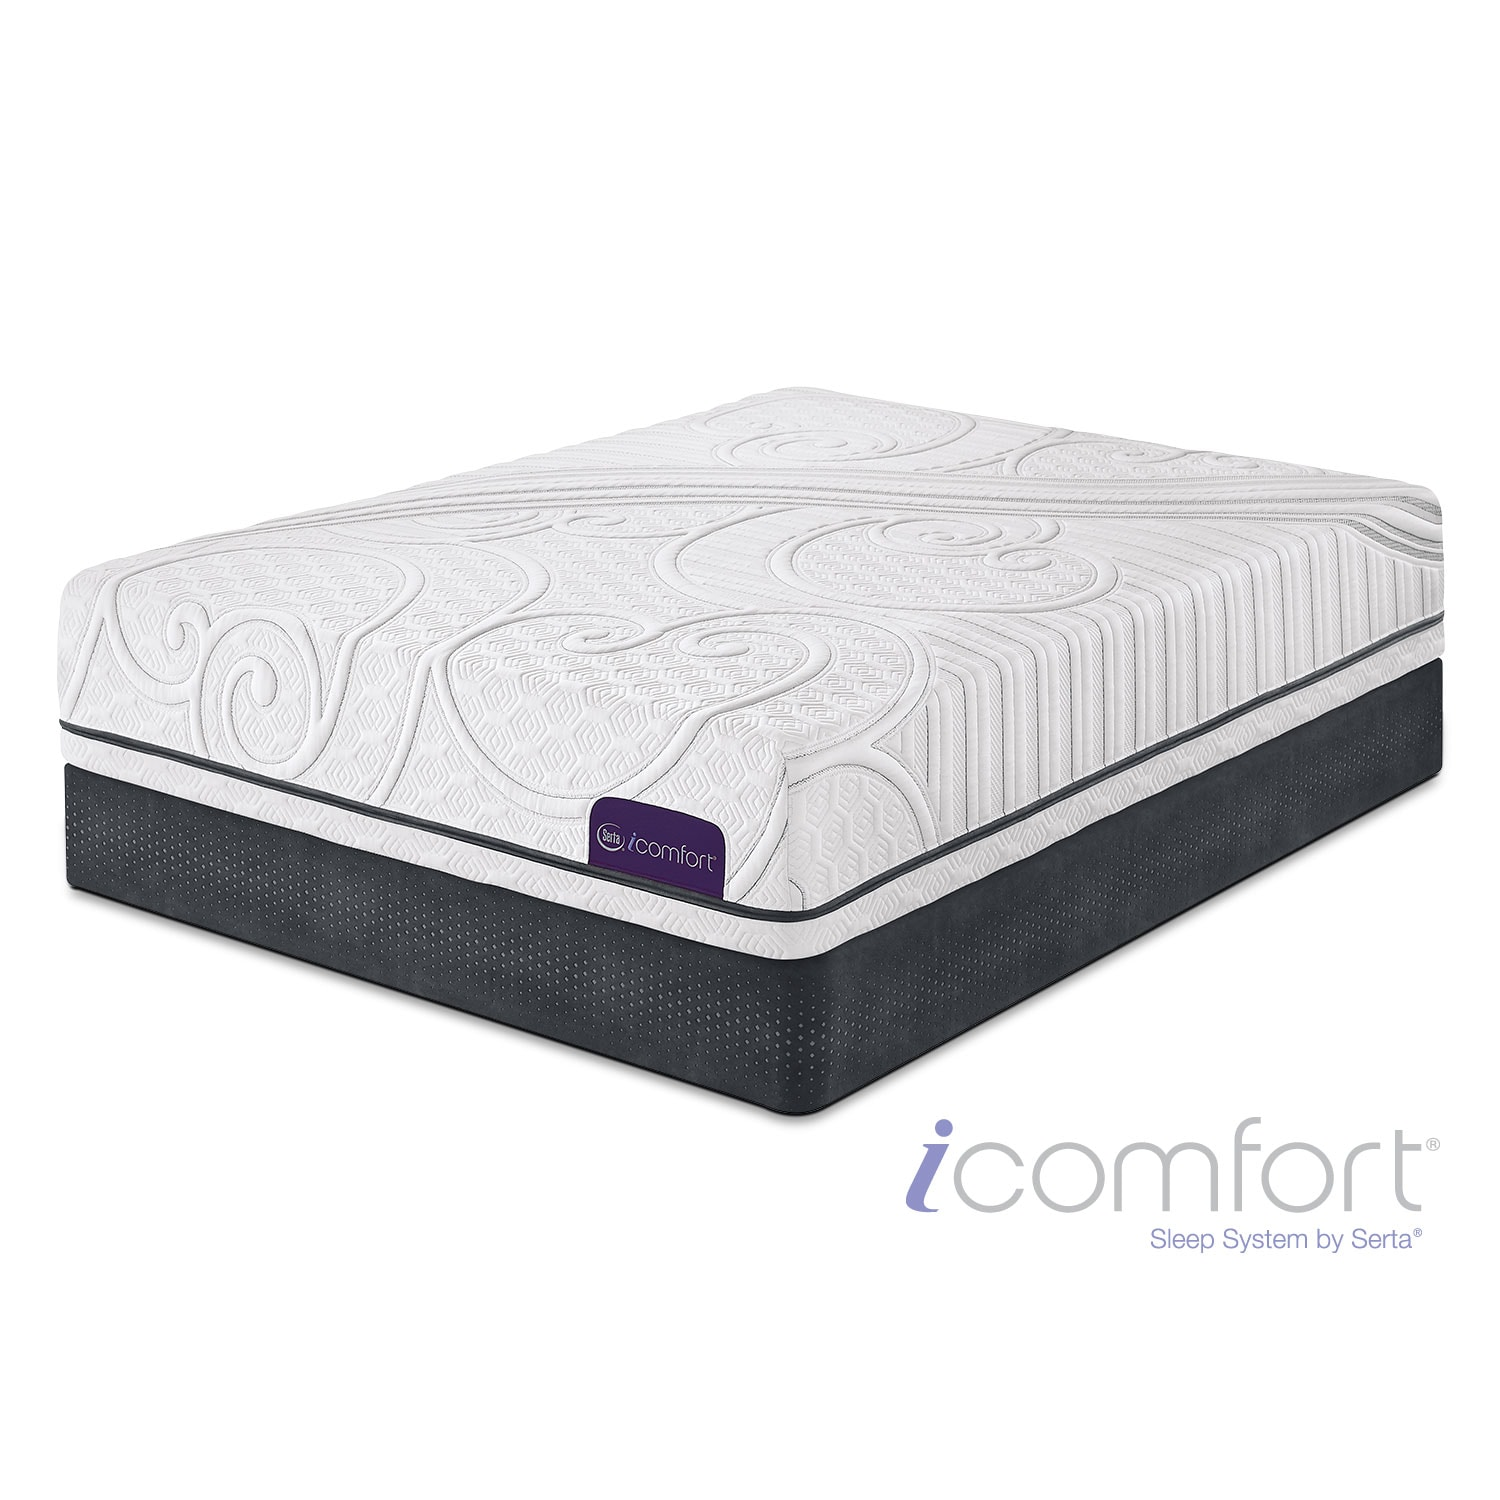 [iComfort Guidance Full Mattress/Foundation Set]